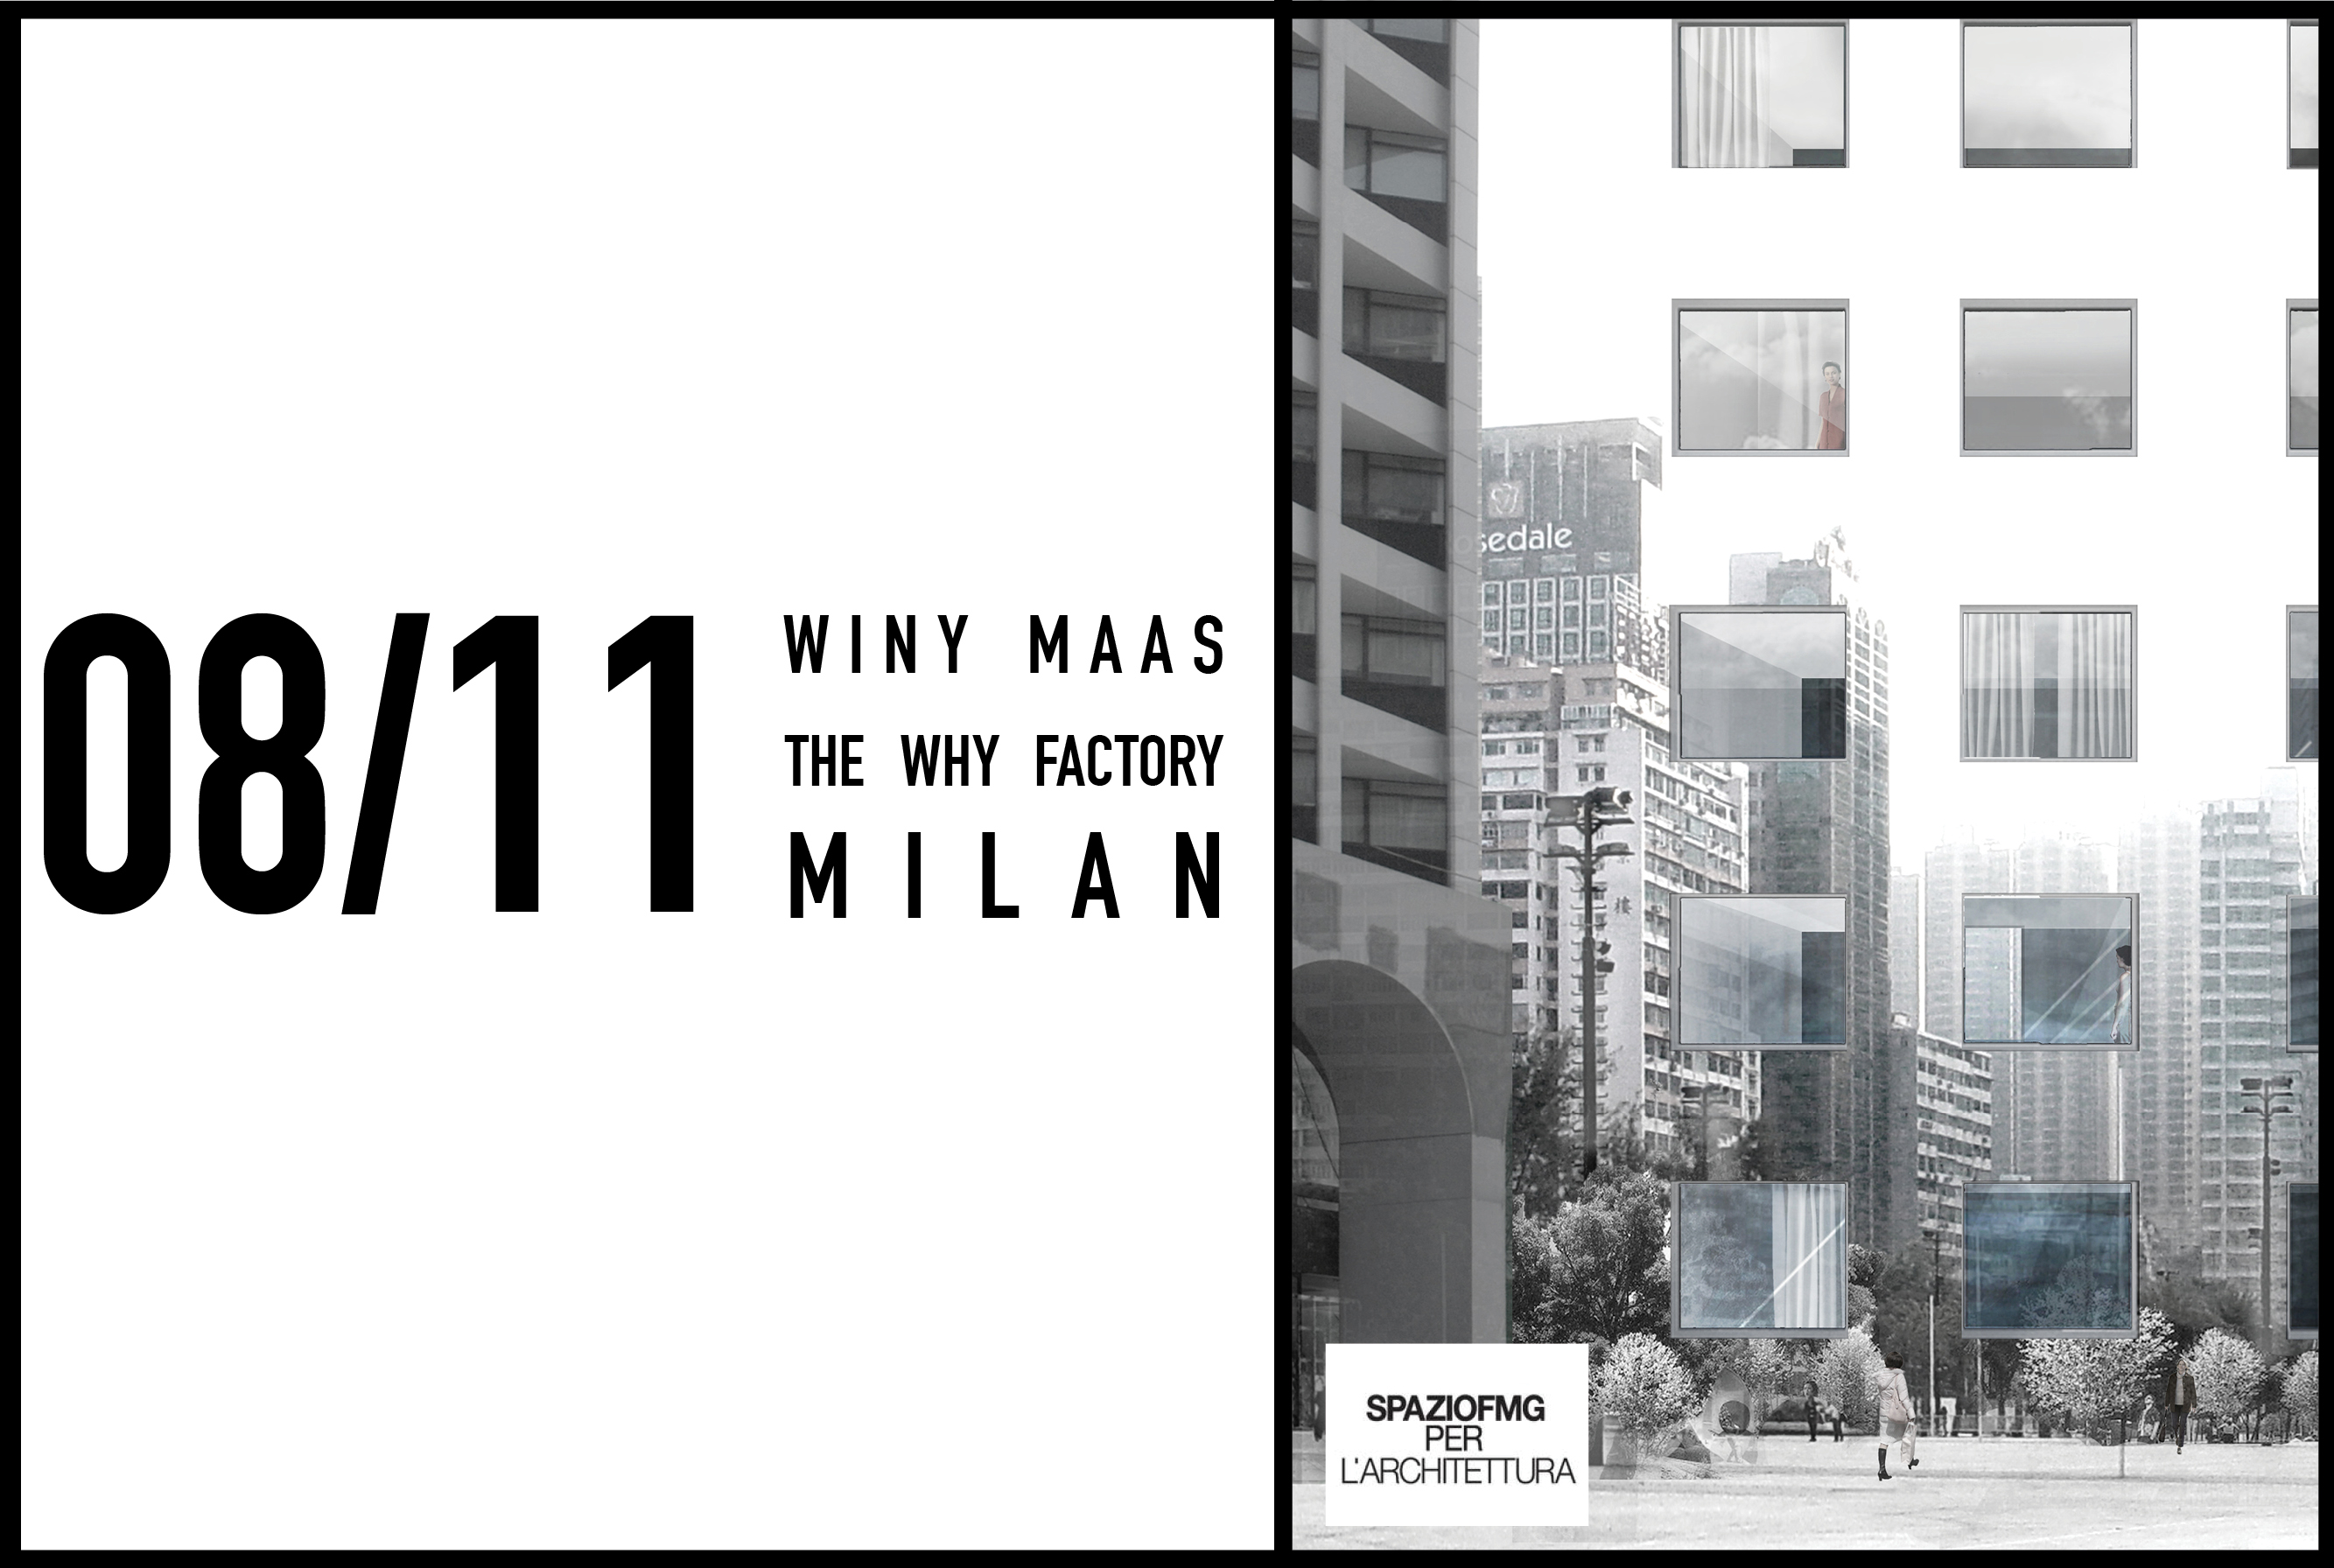 Winy Maas to speak at Why Factory exhibition in Milan on 8 November